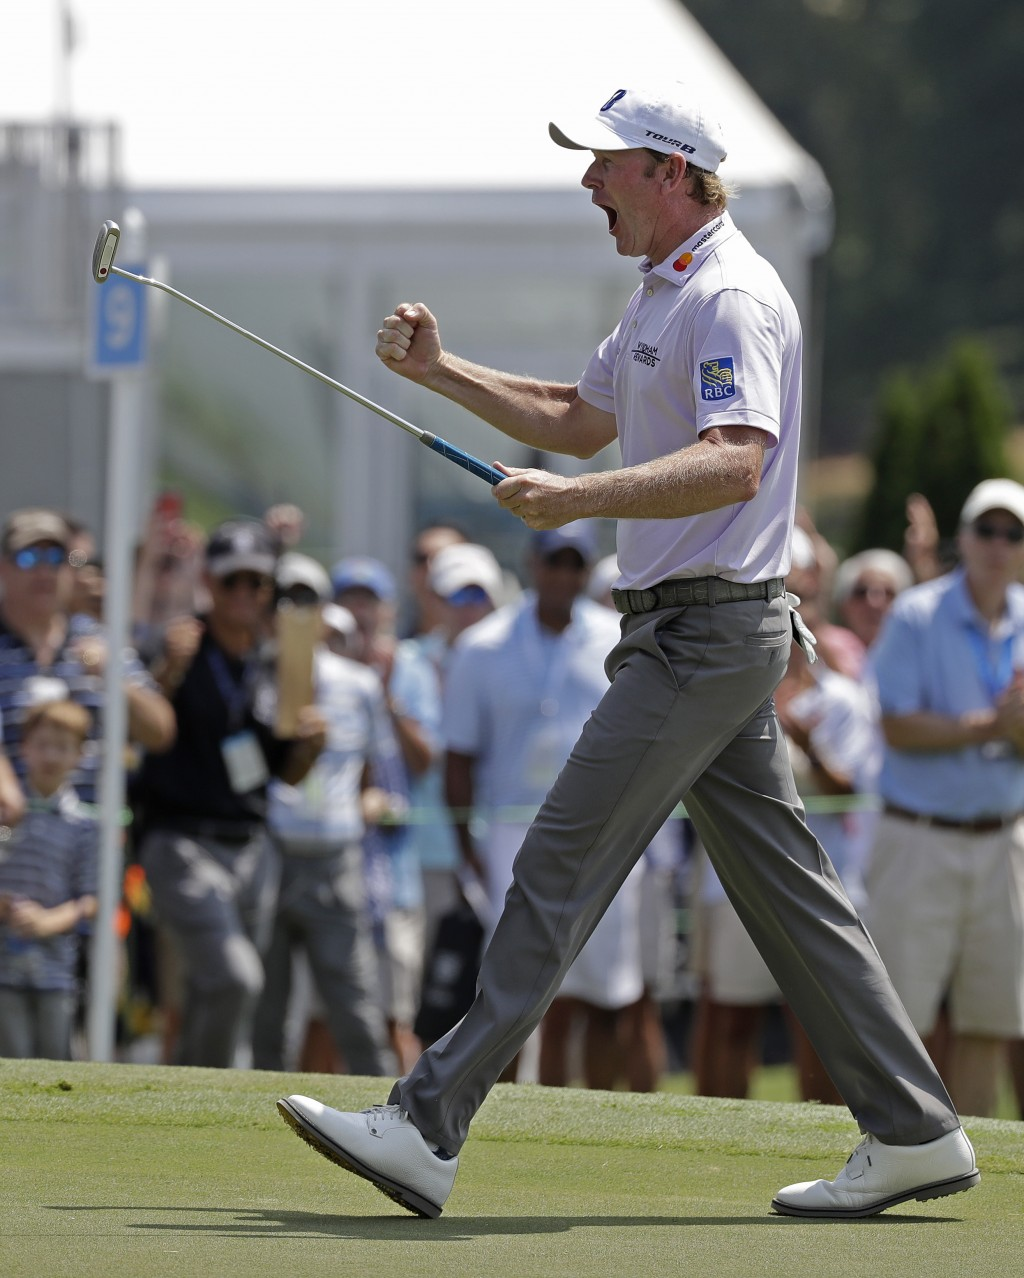 Brandt Snedeker reacts after making a birdie putt on the ninth hole during the first round of the Wyndham Championship golf tournament in Greensboro, ...